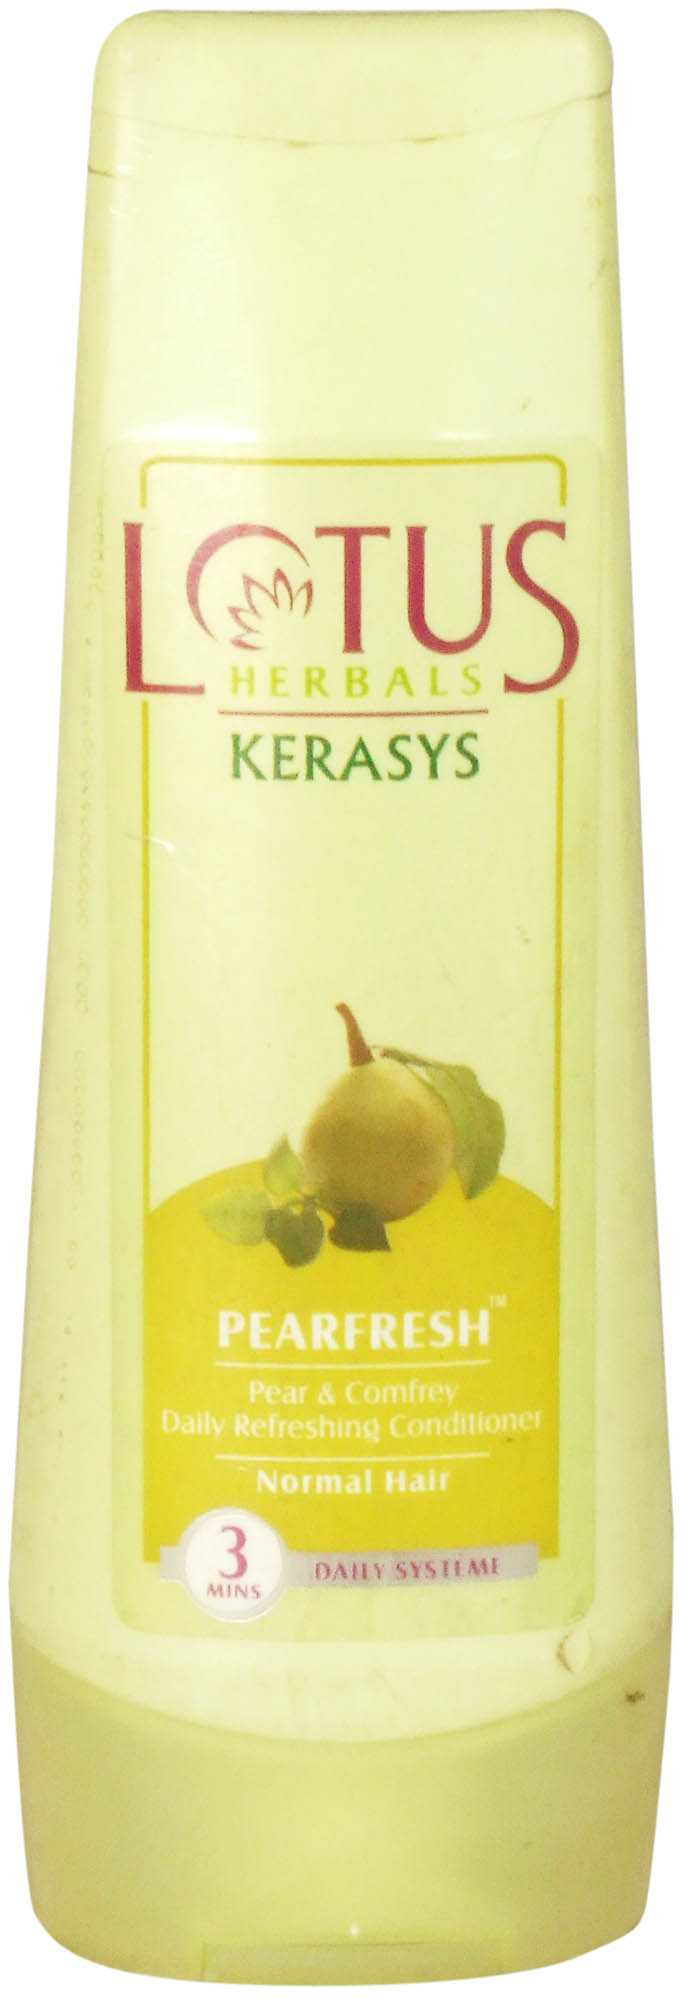 Buy Lotus Herbals Pearfresh Pear and Comfrey Daily Refreshing Conditioner online United States of America [ USA ]